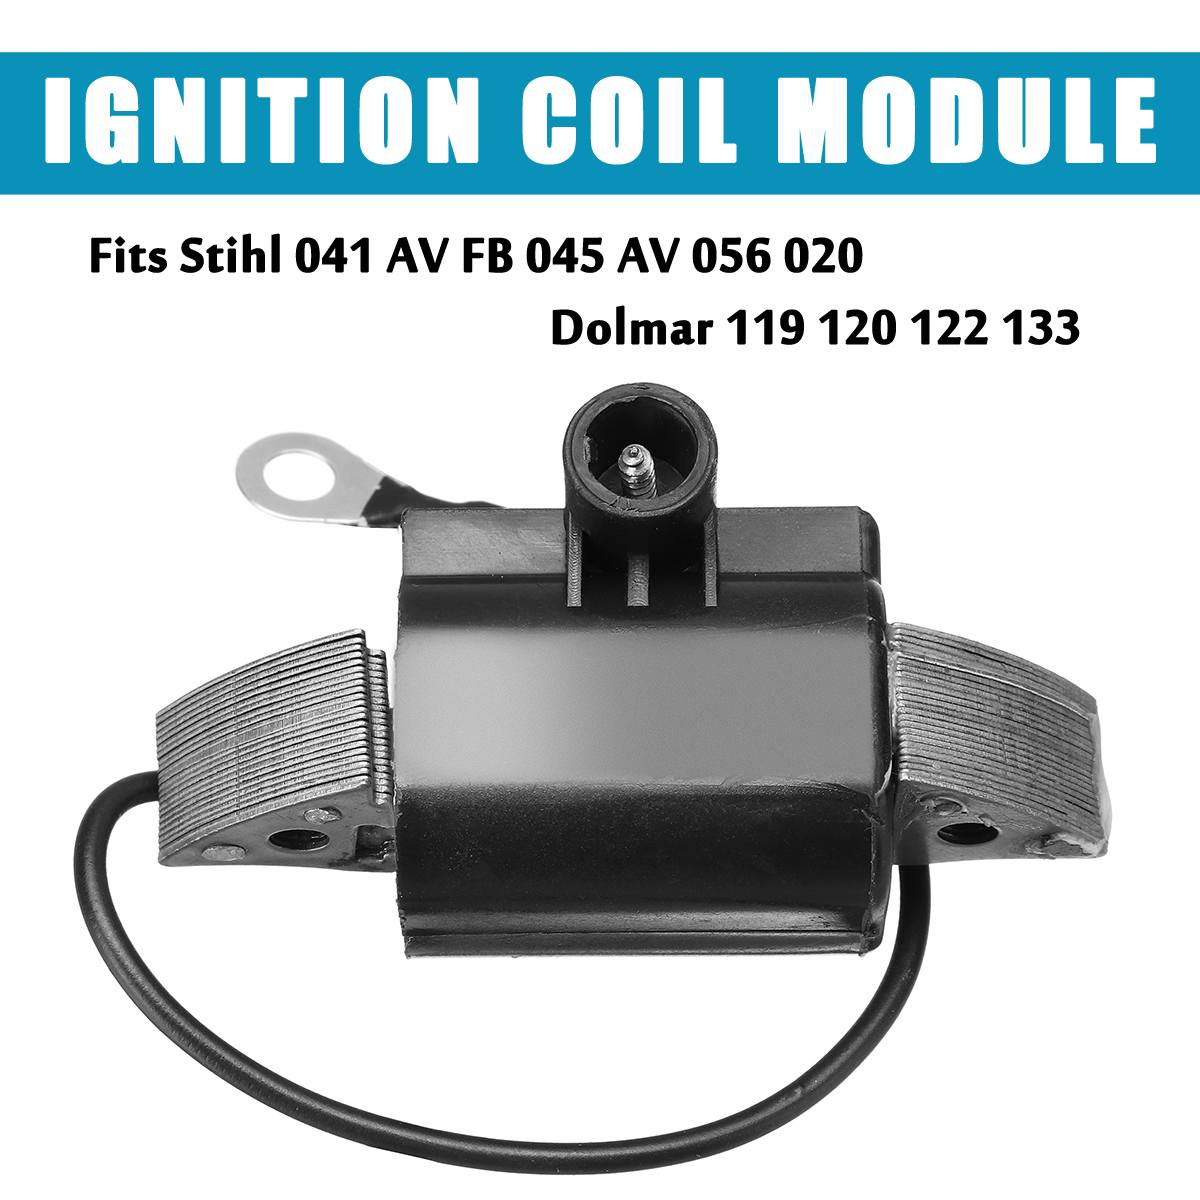 1Pcs Ignition Coil Module Fit For Stihl 041 AV FB 045 AV 056 020 Dolmar 119 120 122 133 Replacement Accessories1Pcs Ignition Coil Module Fit For Stihl 041 AV FB 045 AV 056 020 Dolmar 119 120 122 133 Replacement Accessories